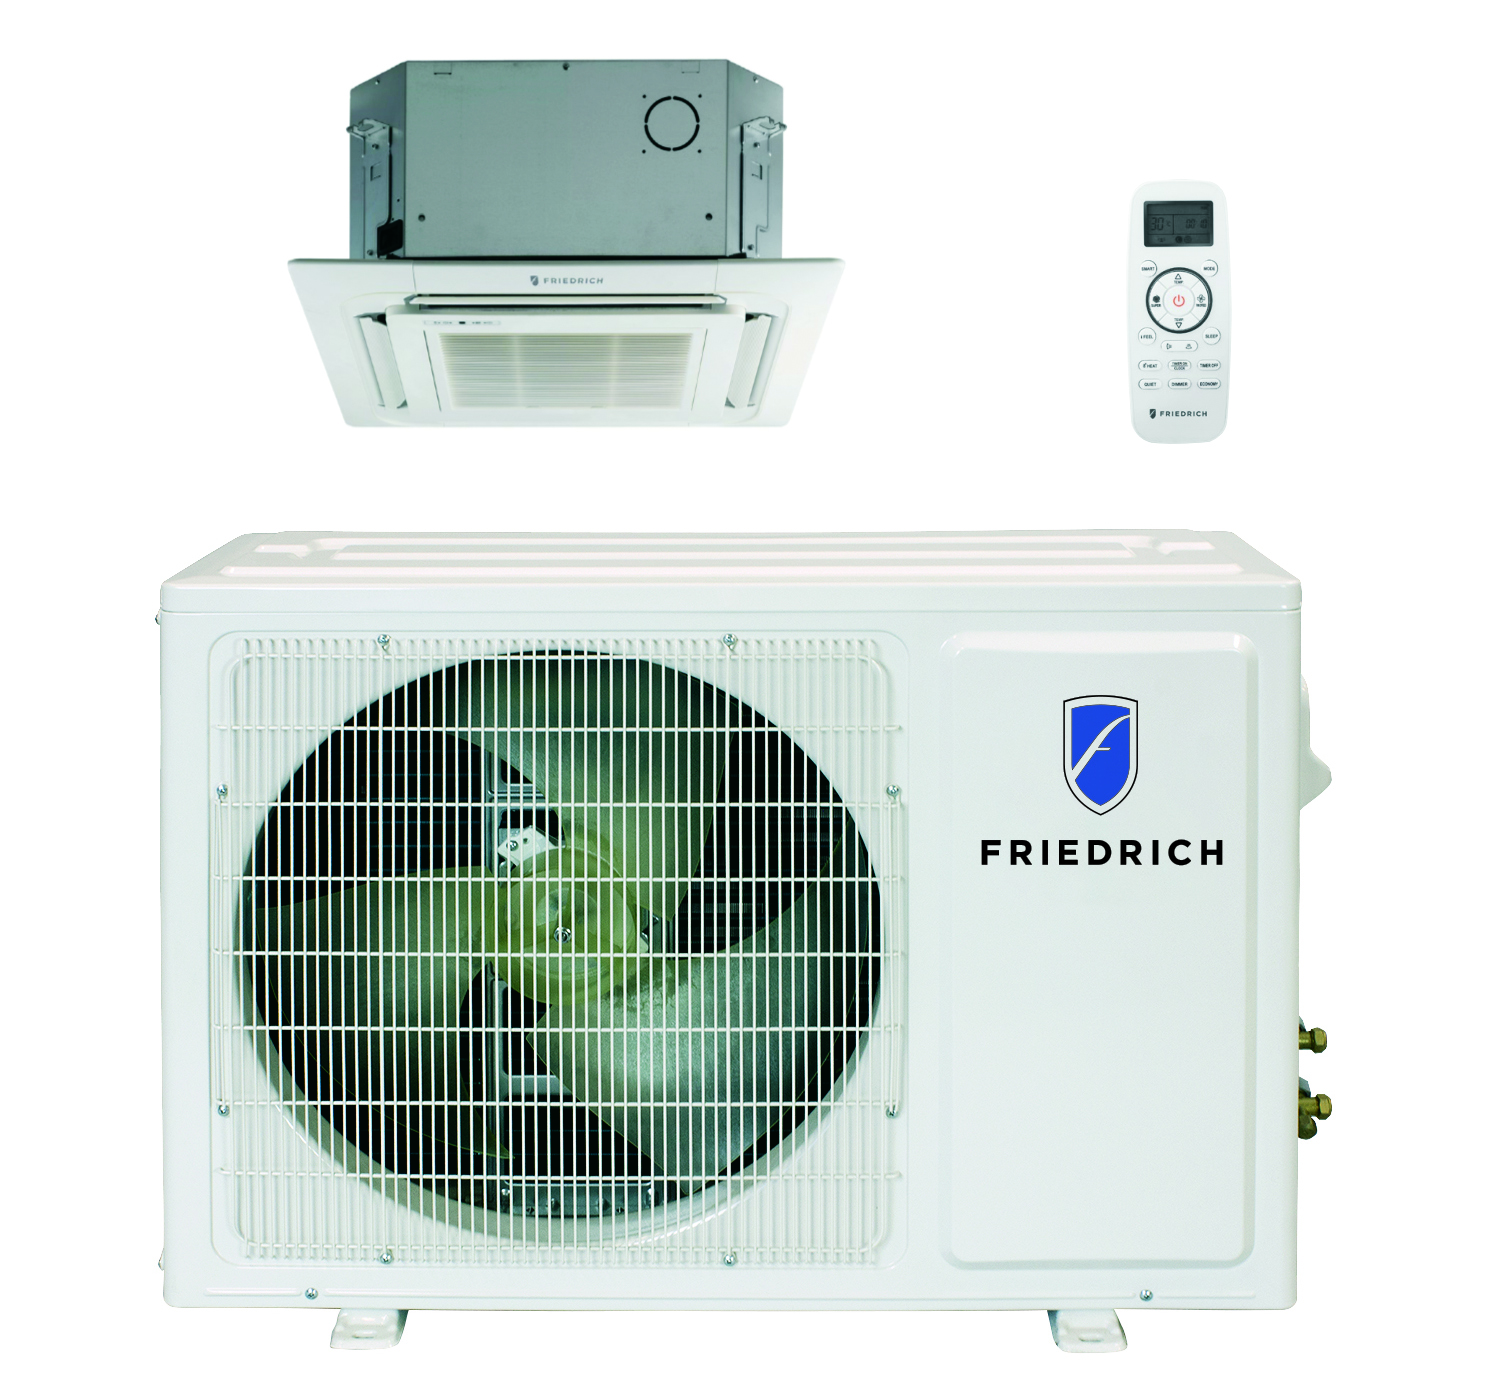 Friedrich FPHC243A 24000 BTU Floating Air Pro Series Single Zone Mini Split Ceiling Cassette with Built-In WiFi - Heat and Cool